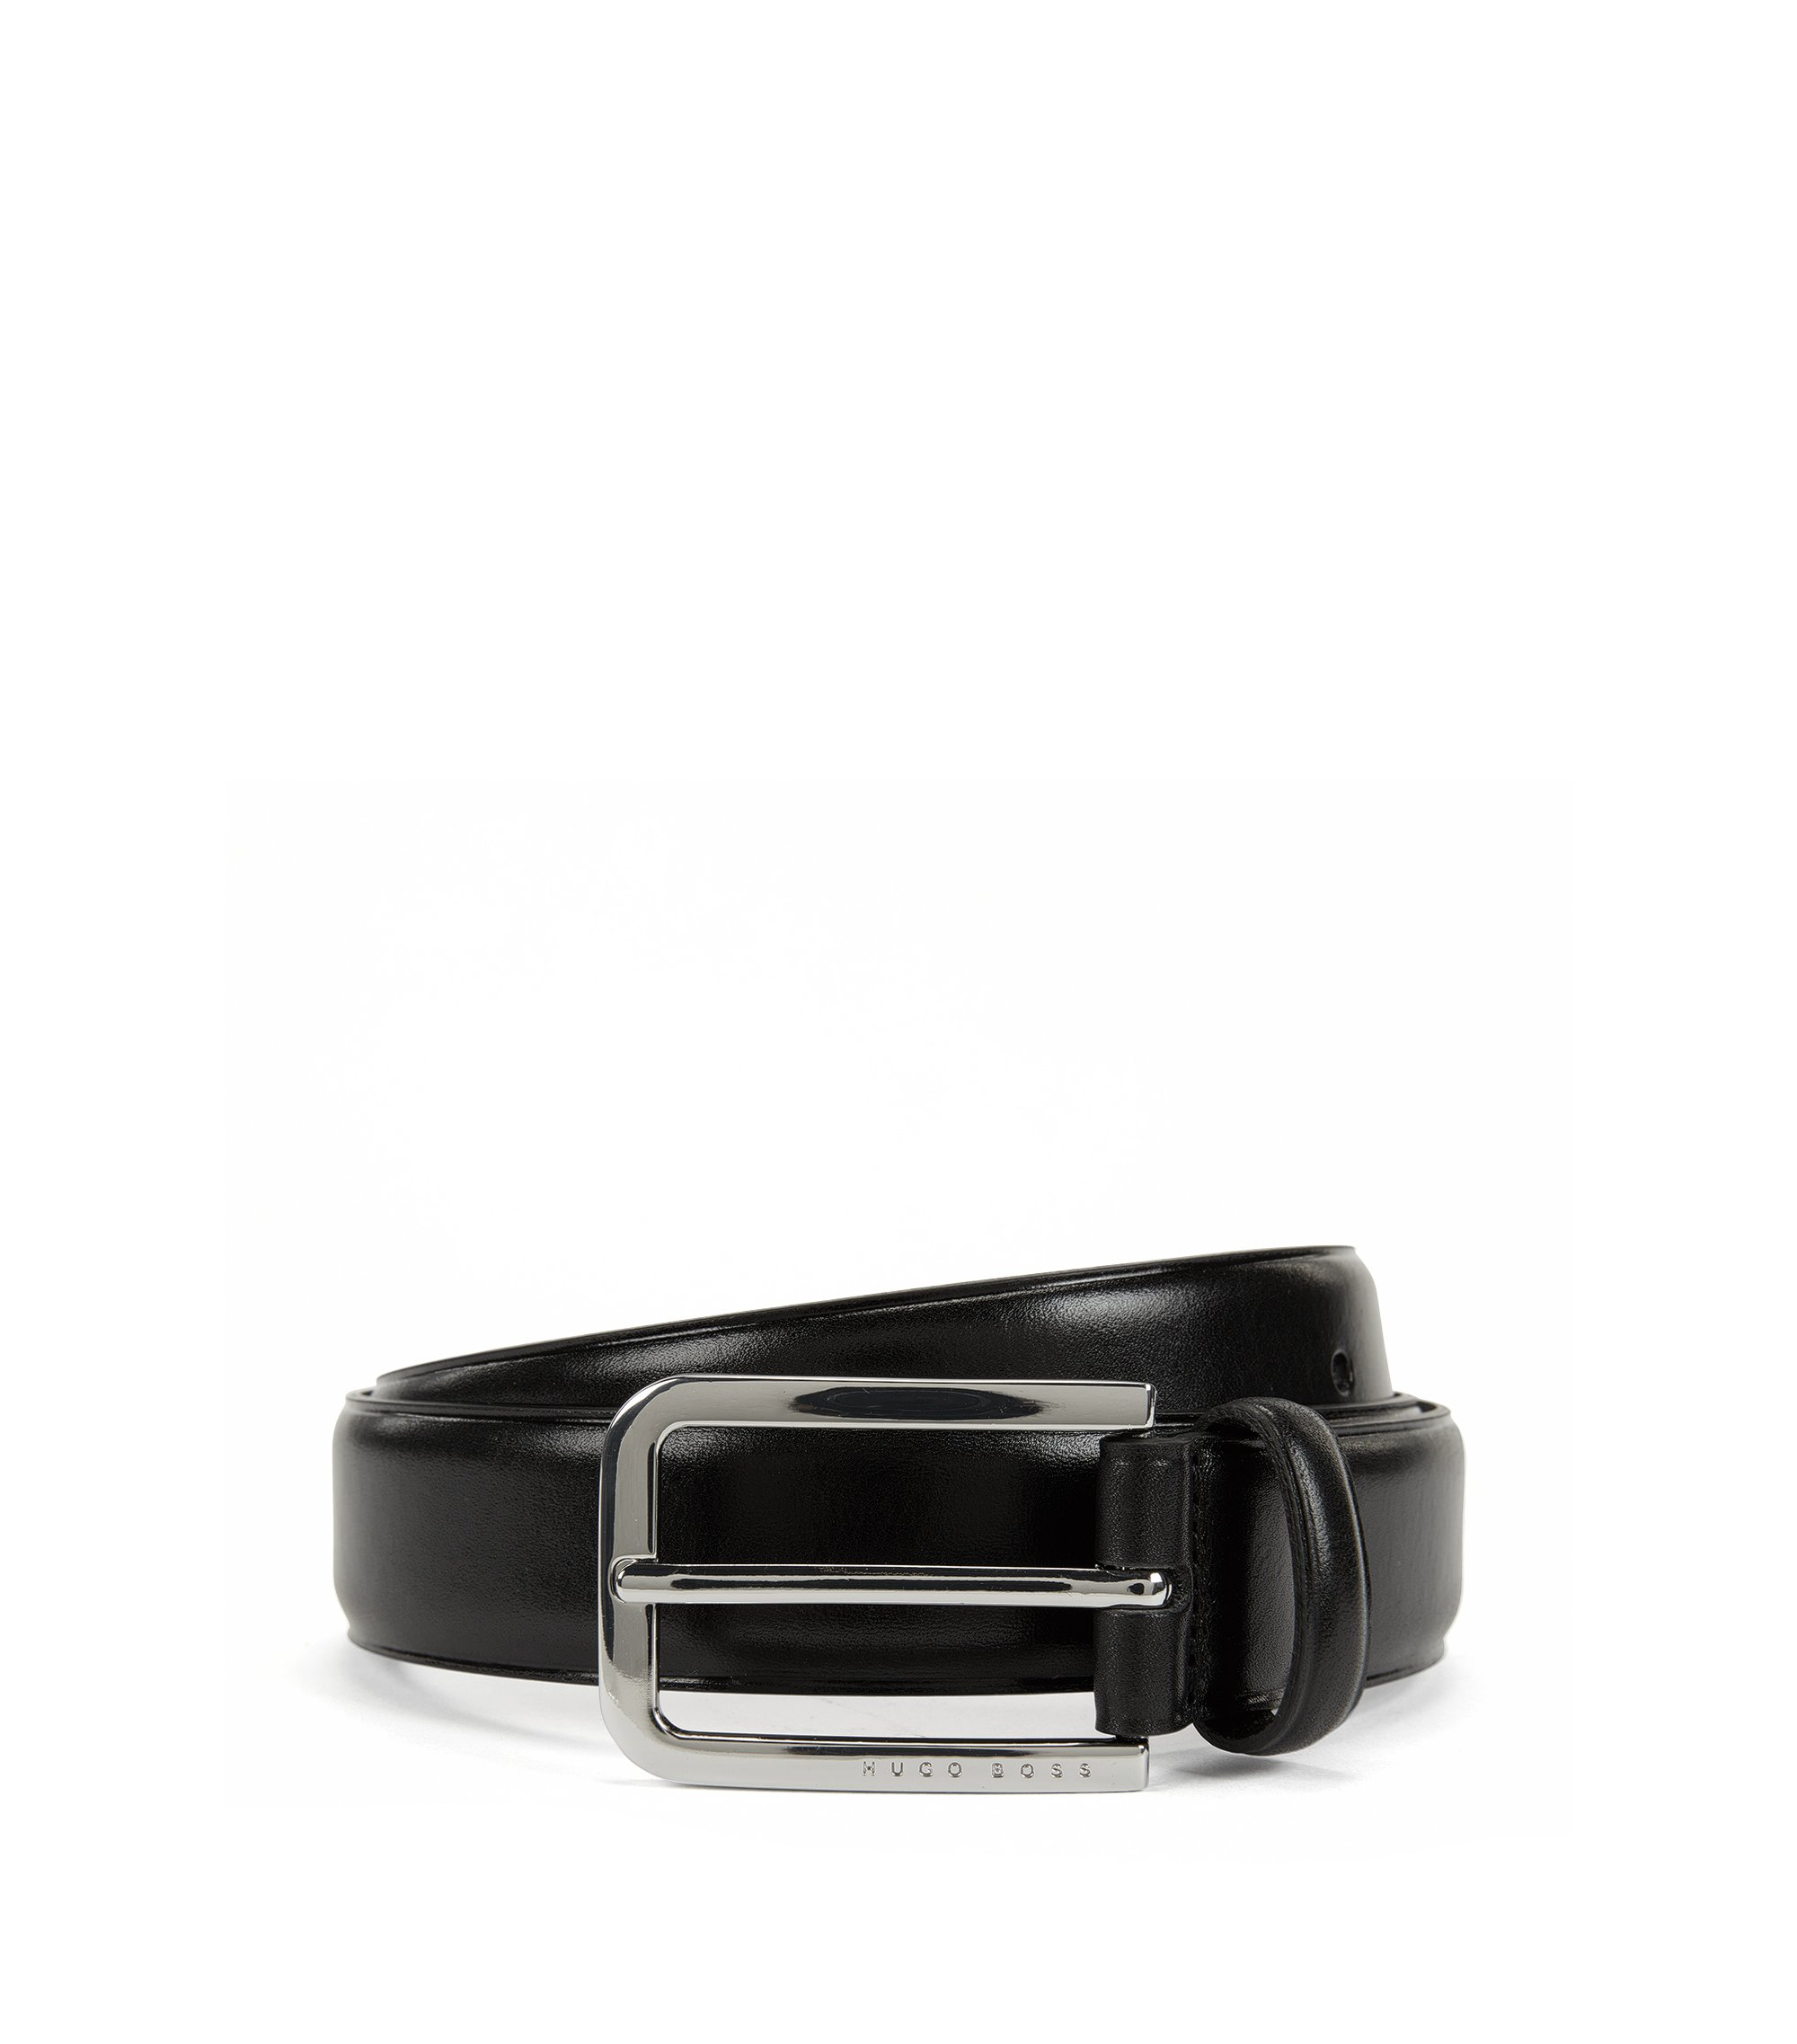 Smooth leather belt with rounded buckle in polished metal, Black